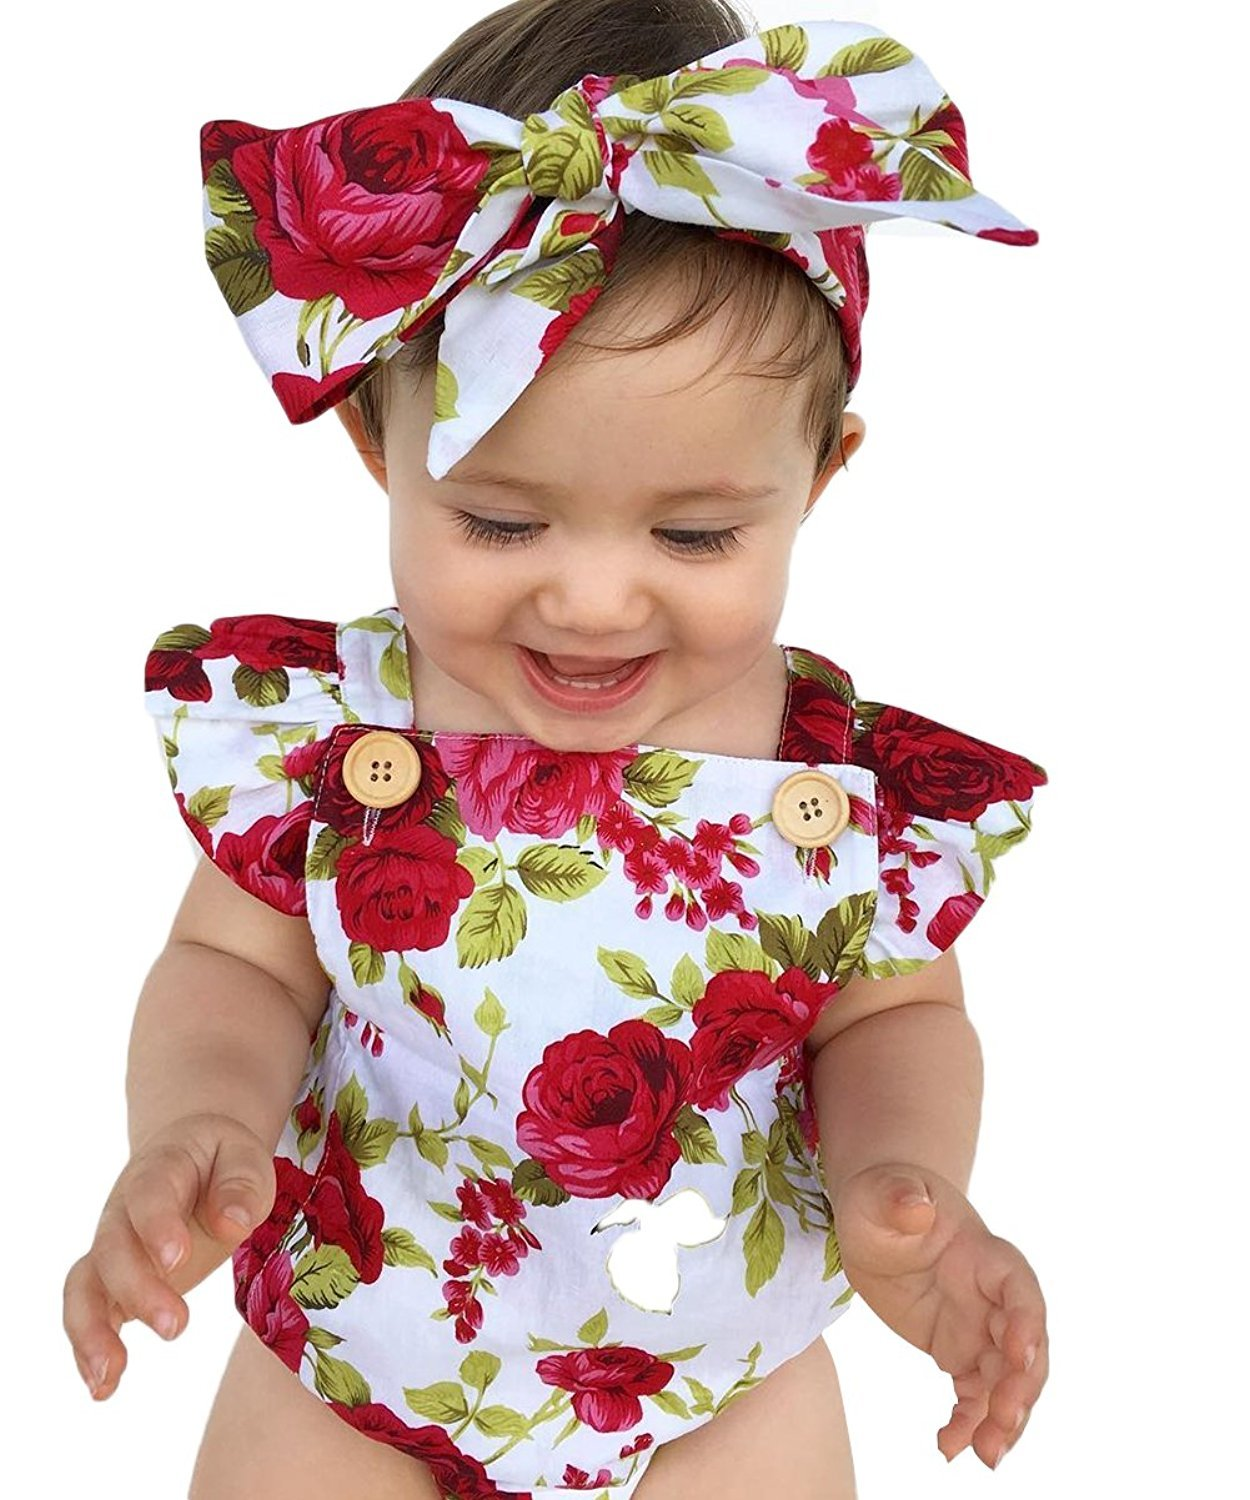 LOliSWan Newborn Kids Baby Girls Clothes Floral Outfits Set Lace Romper Suit Baby Headband (White, 6-9 Months)